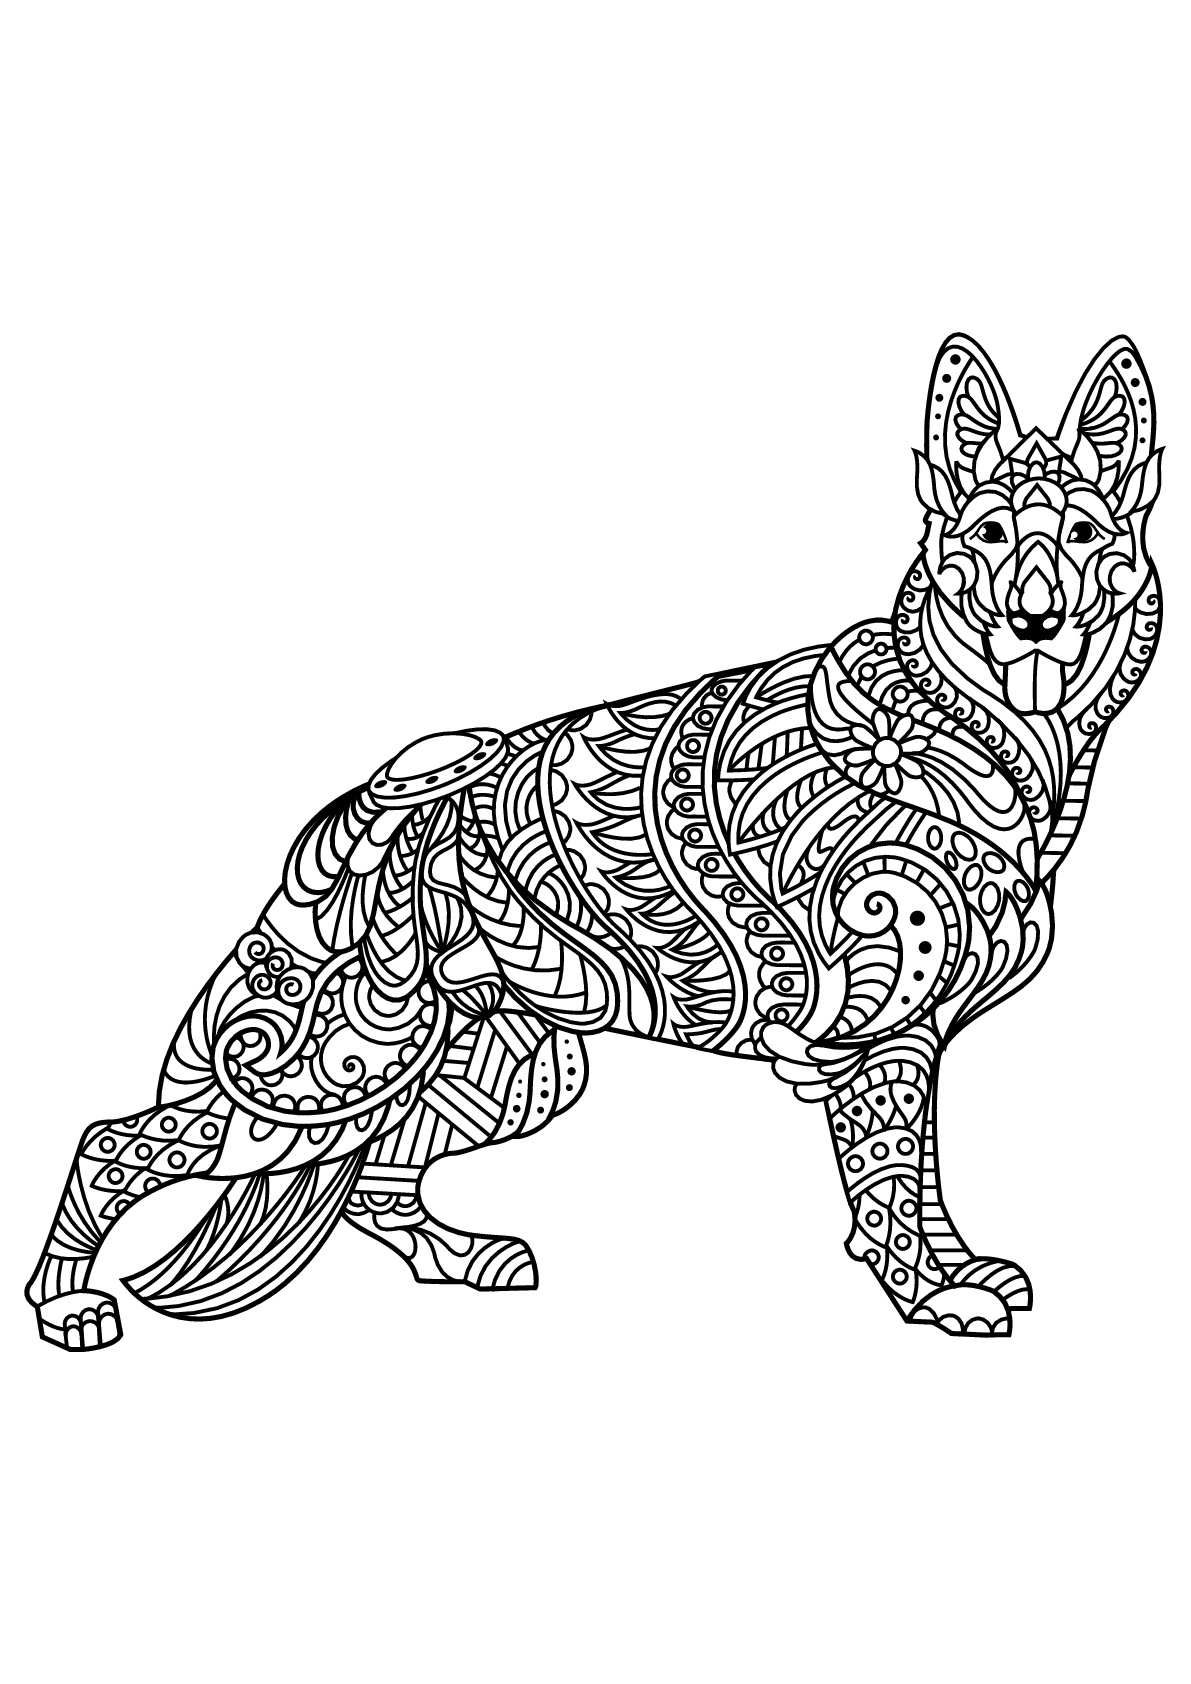 Free book dog german shepherd - Dogs Adult Coloring Pages